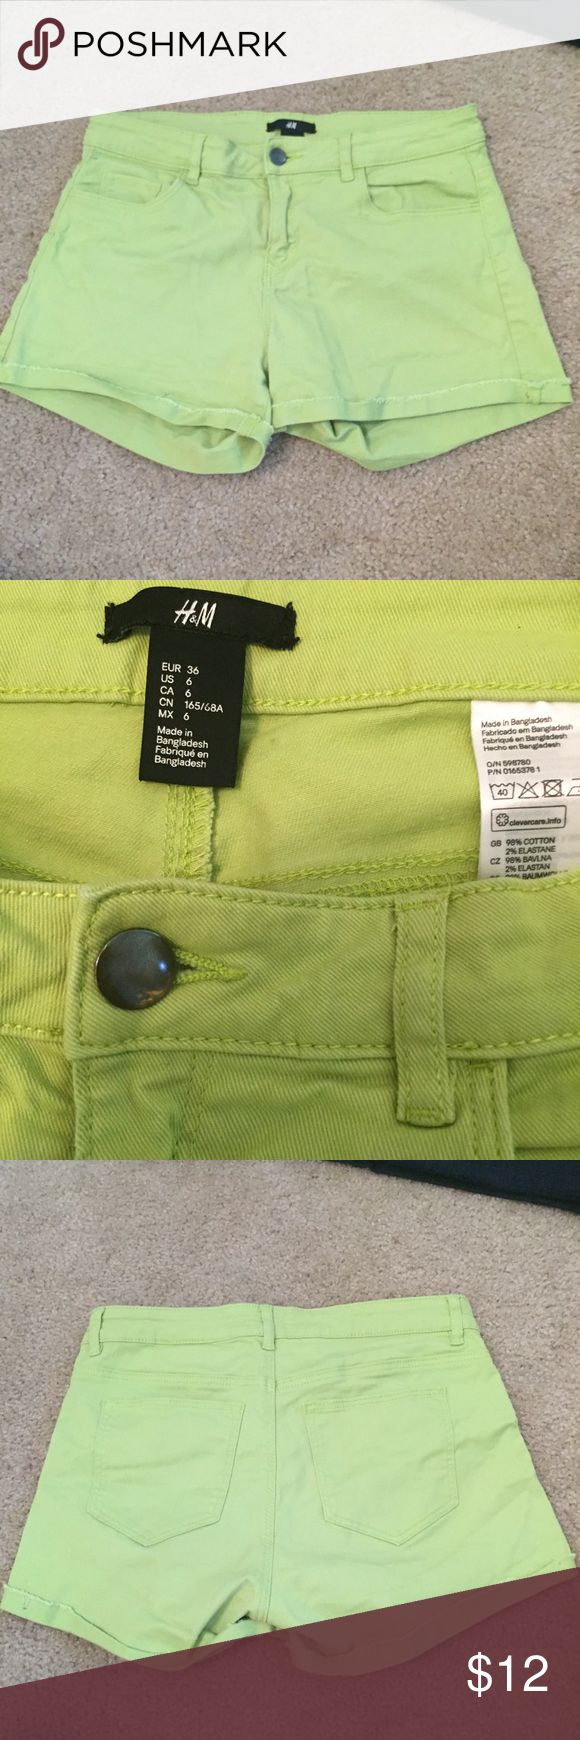 H&M lime green jean shorts 6 EUC lime green shorts from H&M size 6 stretchy H&M Shorts Jean Shorts